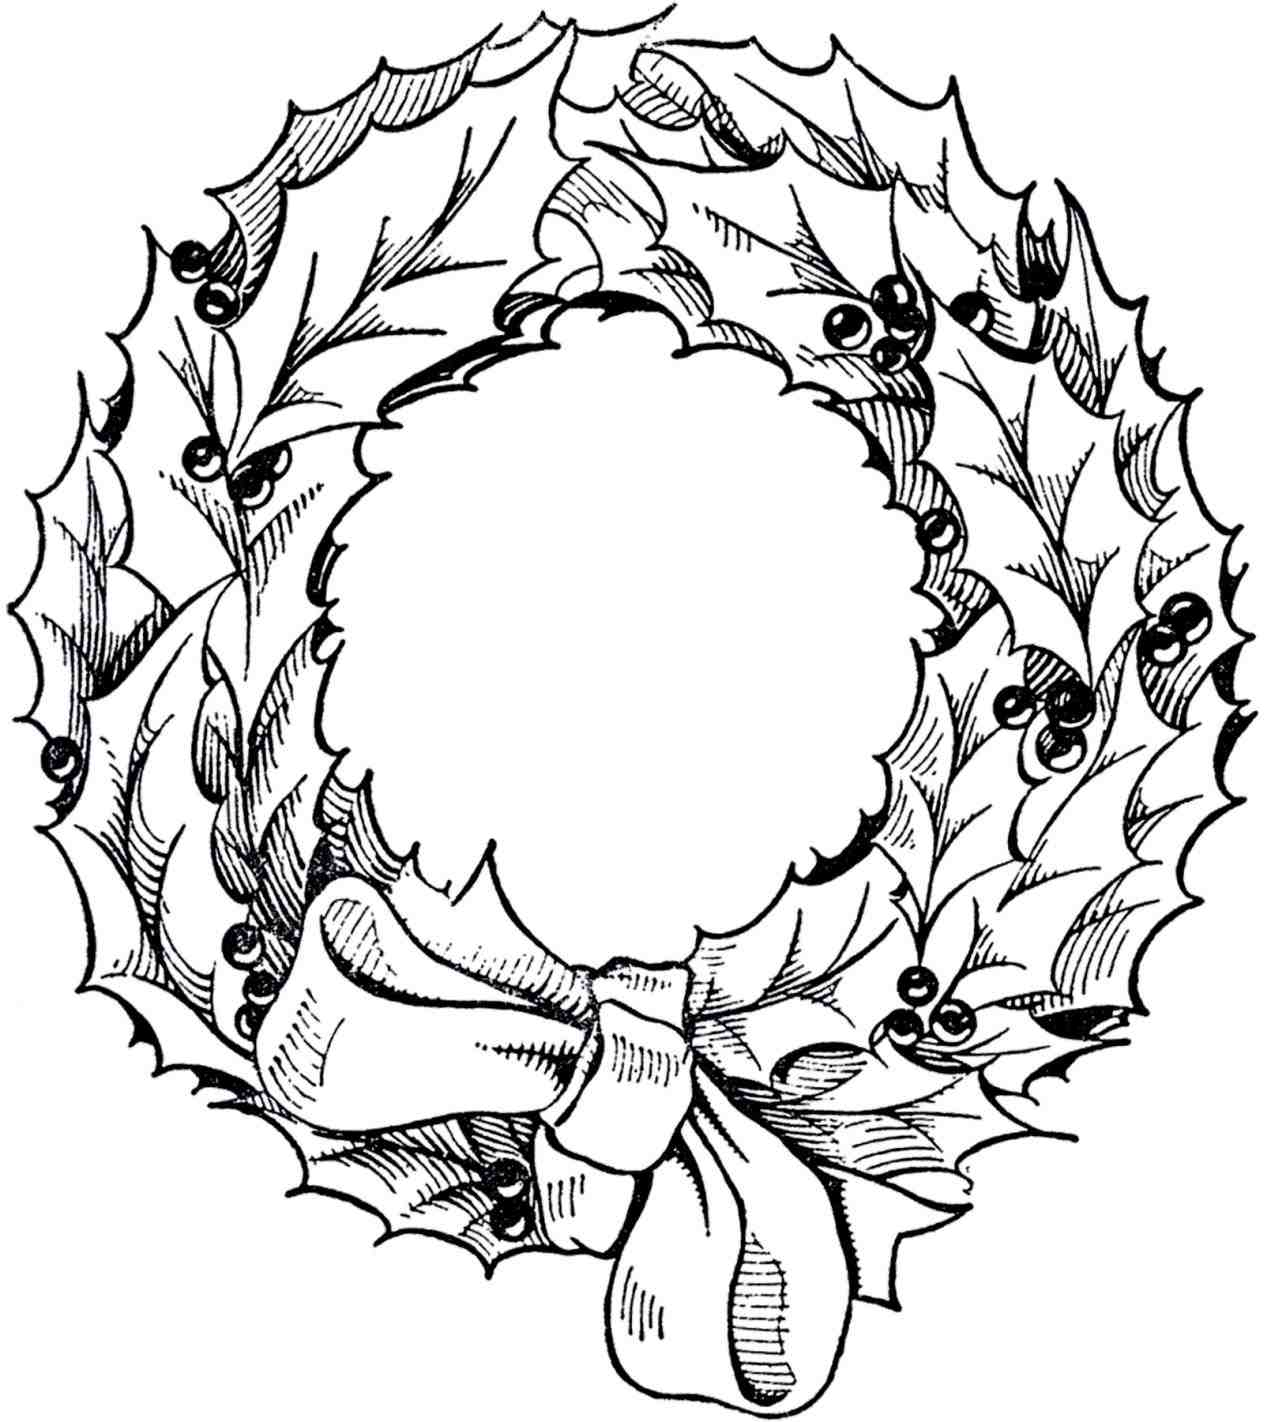 1271x1422 vintage black and white christmas wreath clipart graphic - Black And White Christmas Clip Art